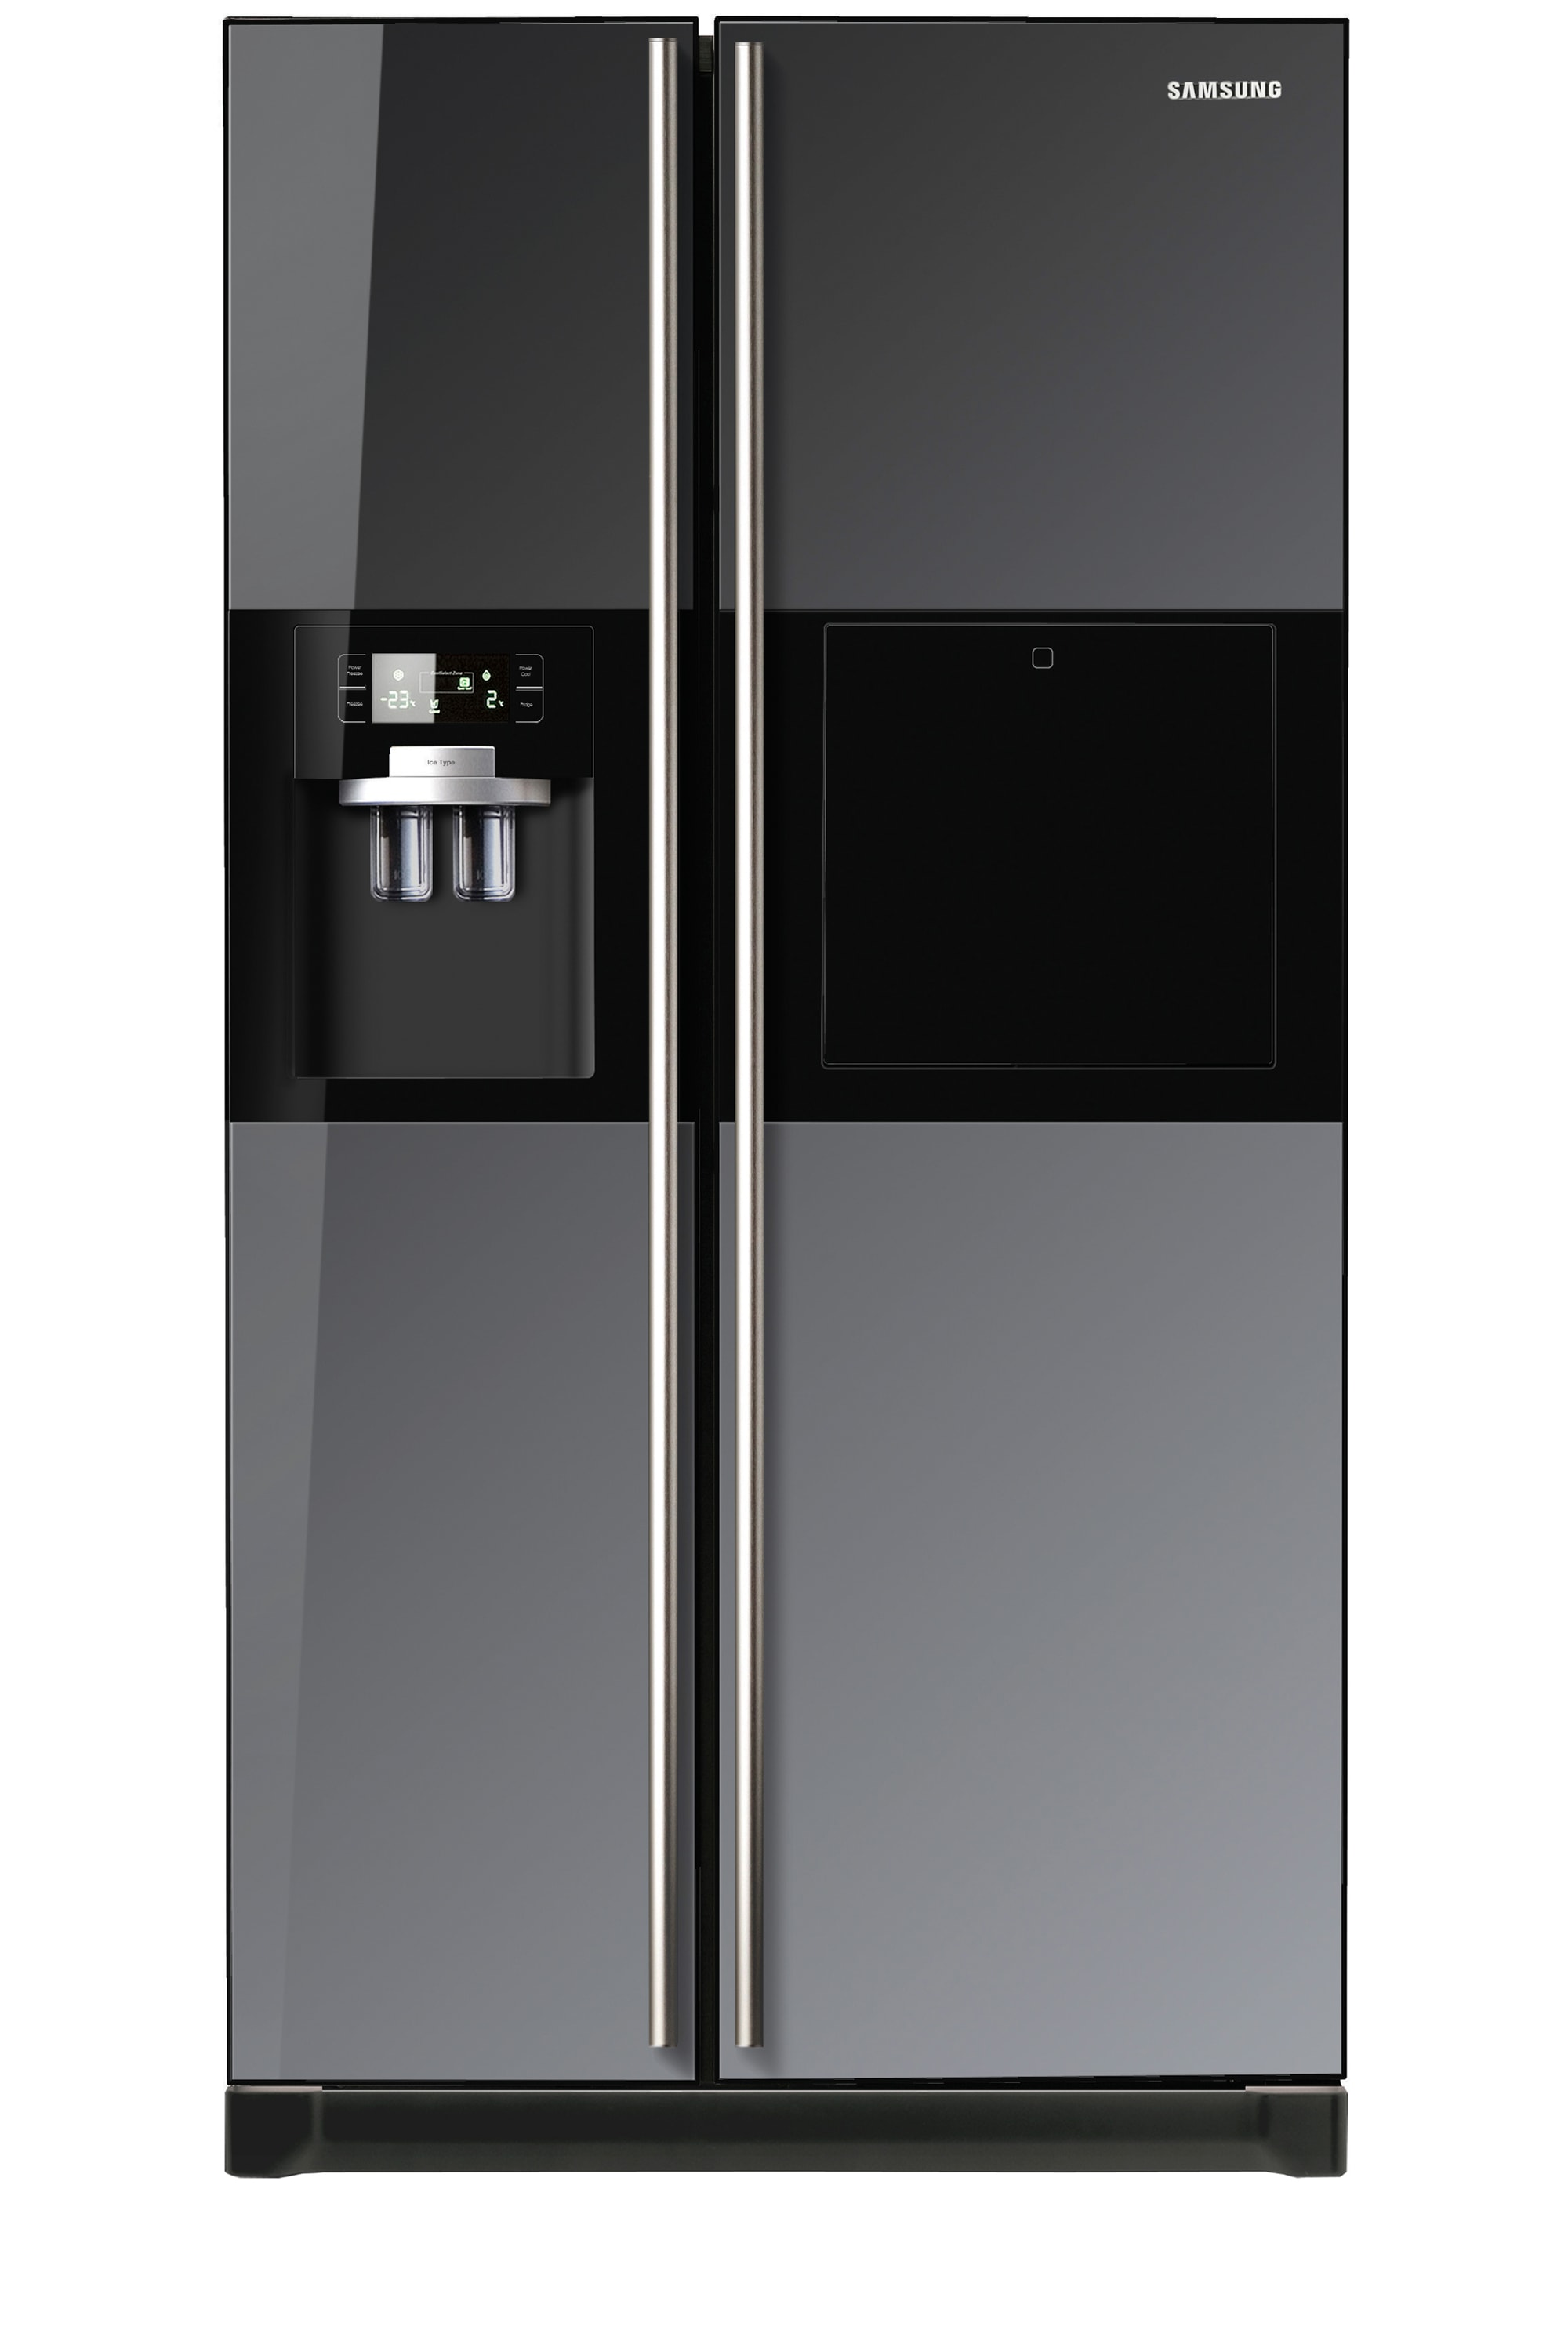 Rs21hklmr H Series Side By Side Refrigerator Samsung Support Africaen